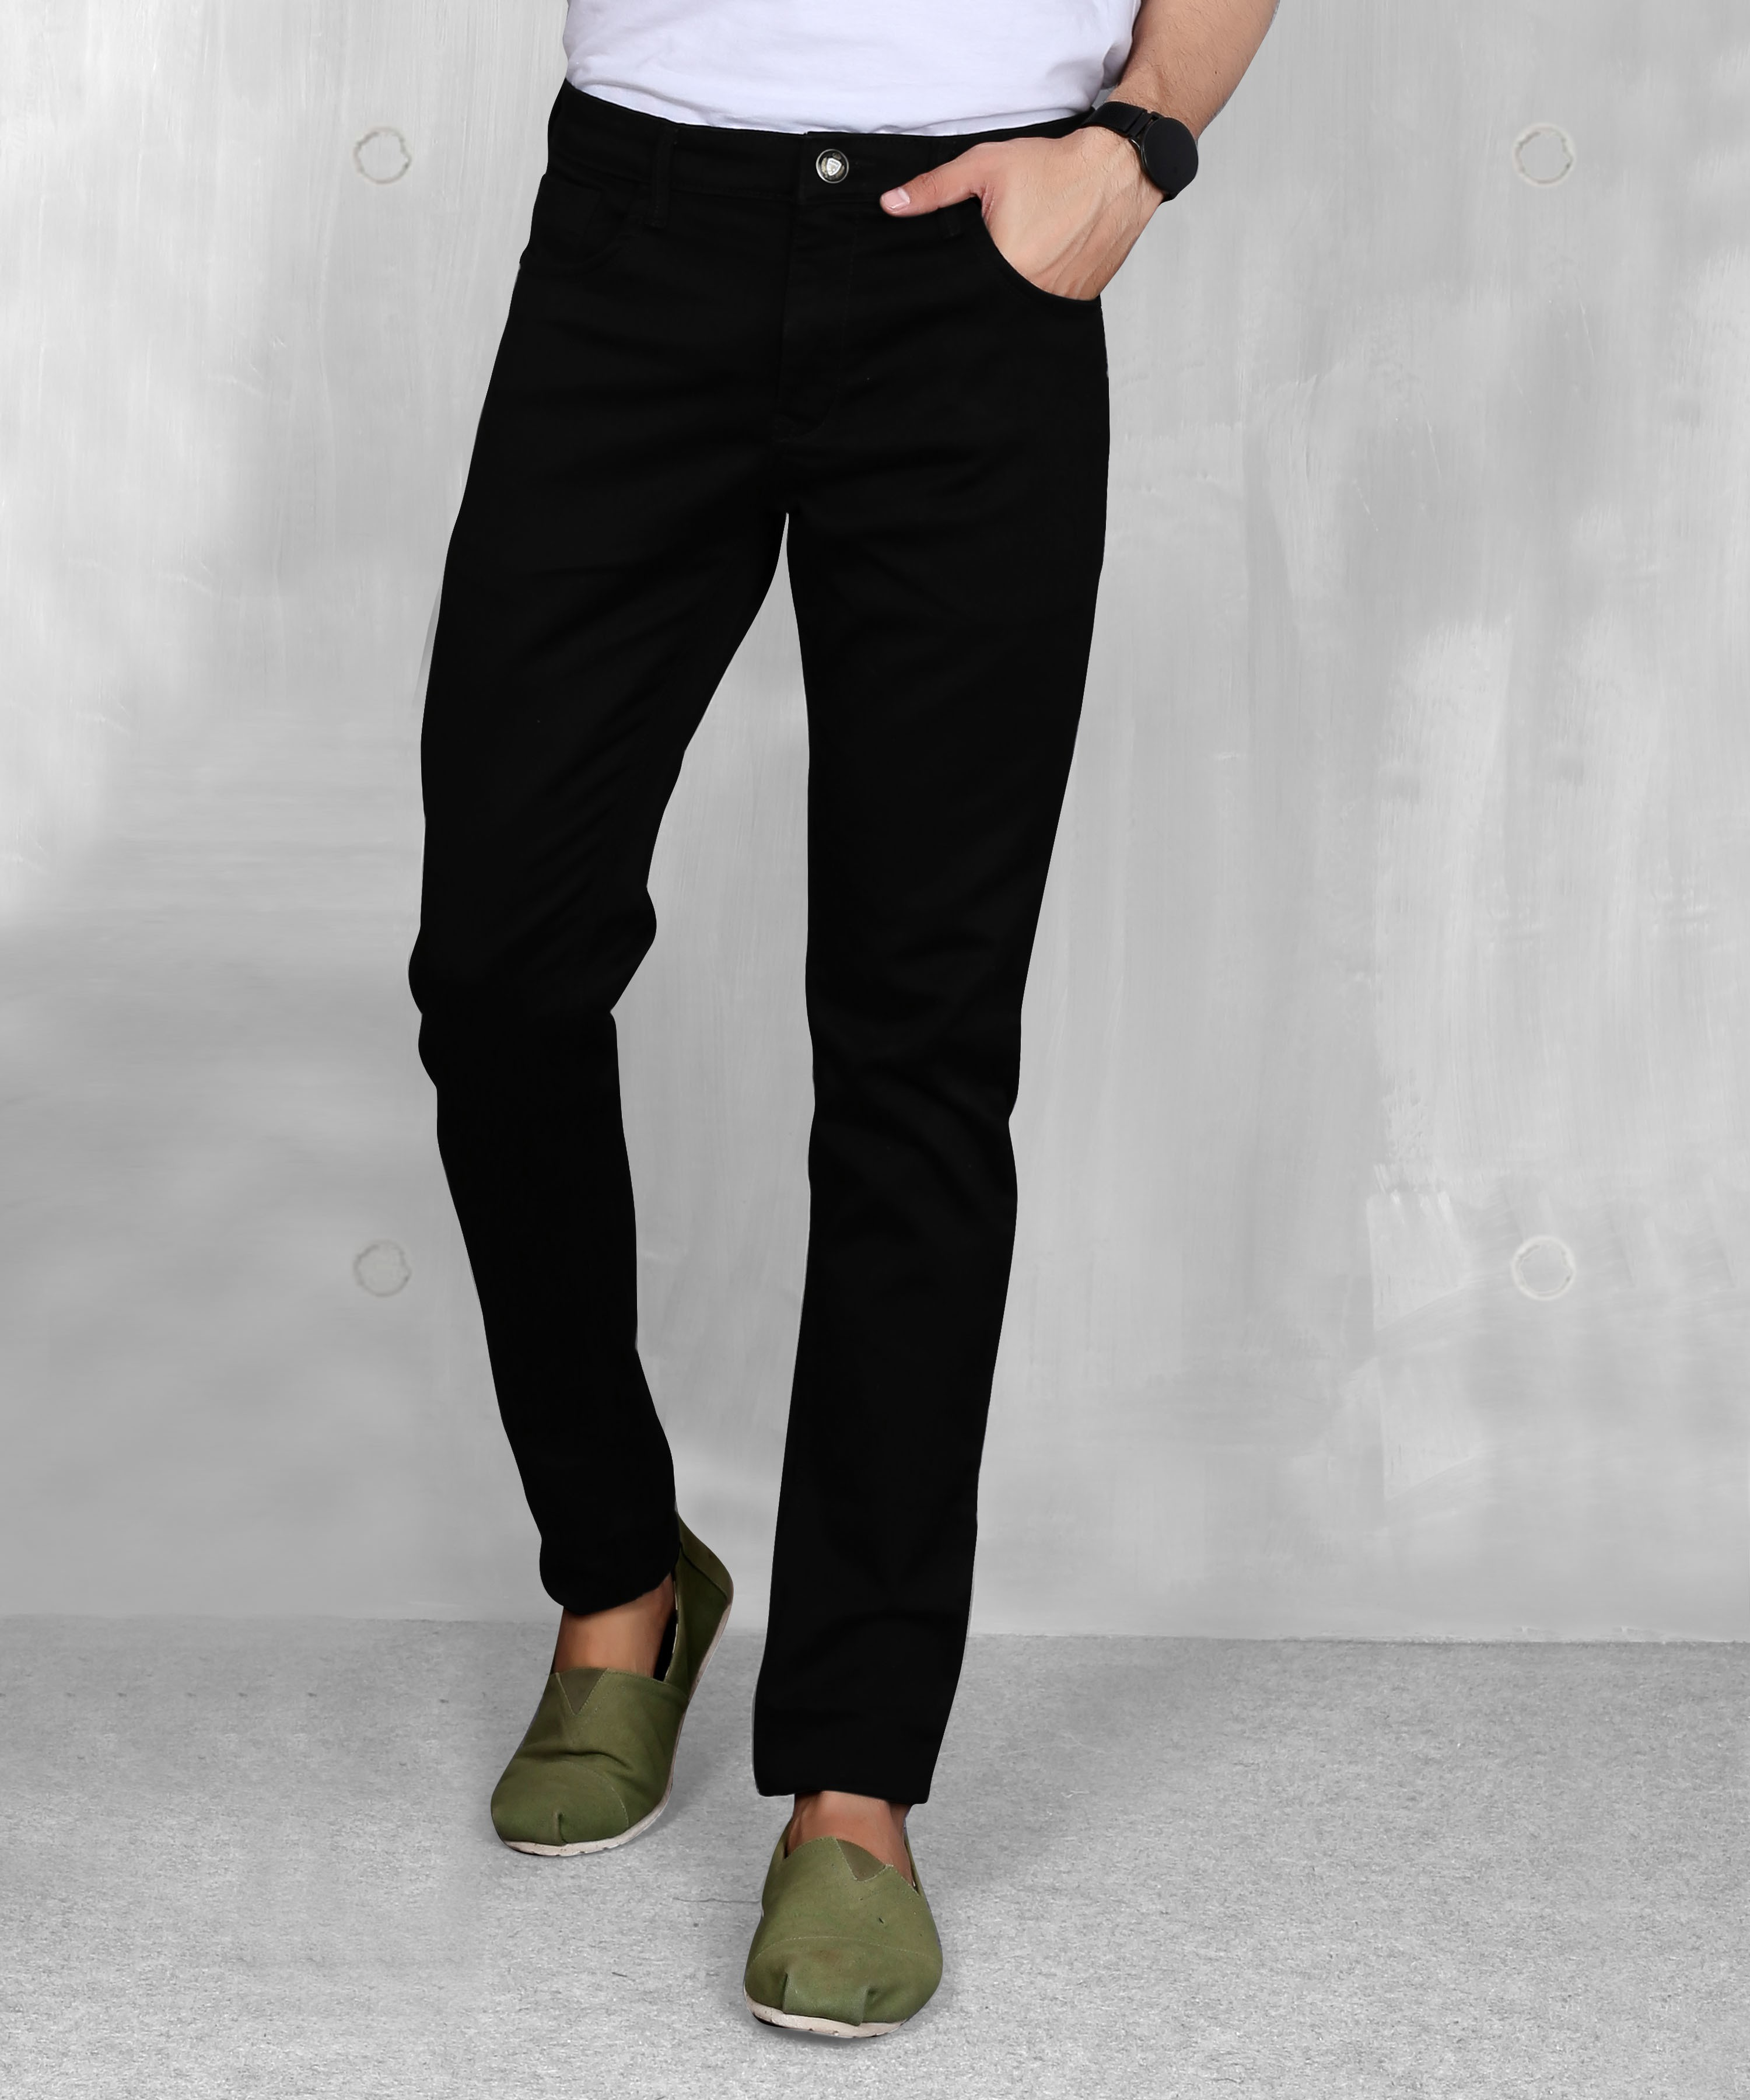 5th Anfold | FIFTH ANFOLD Mens Black Clean Slim Narrow fit Mid Rise Jeans